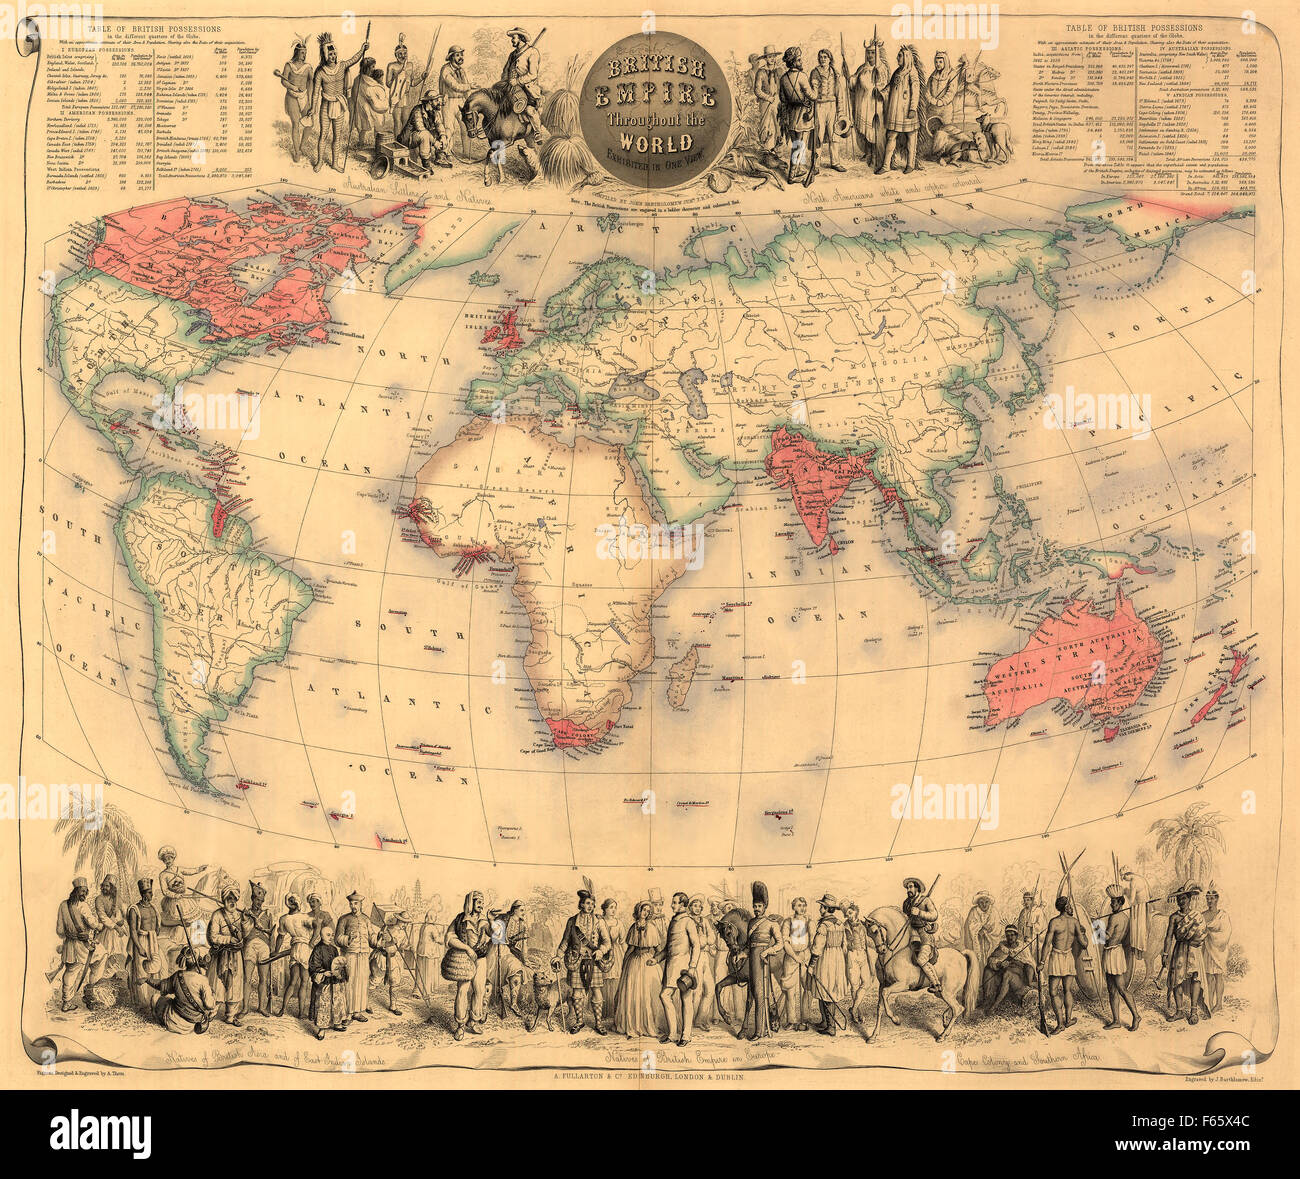 Map of the world circa 1870 with possessions of the british empire map of the world circa 1870 with possessions of the british empire coloured red the map first appeared in fullartons royal illustrated atlas gumiabroncs Gallery